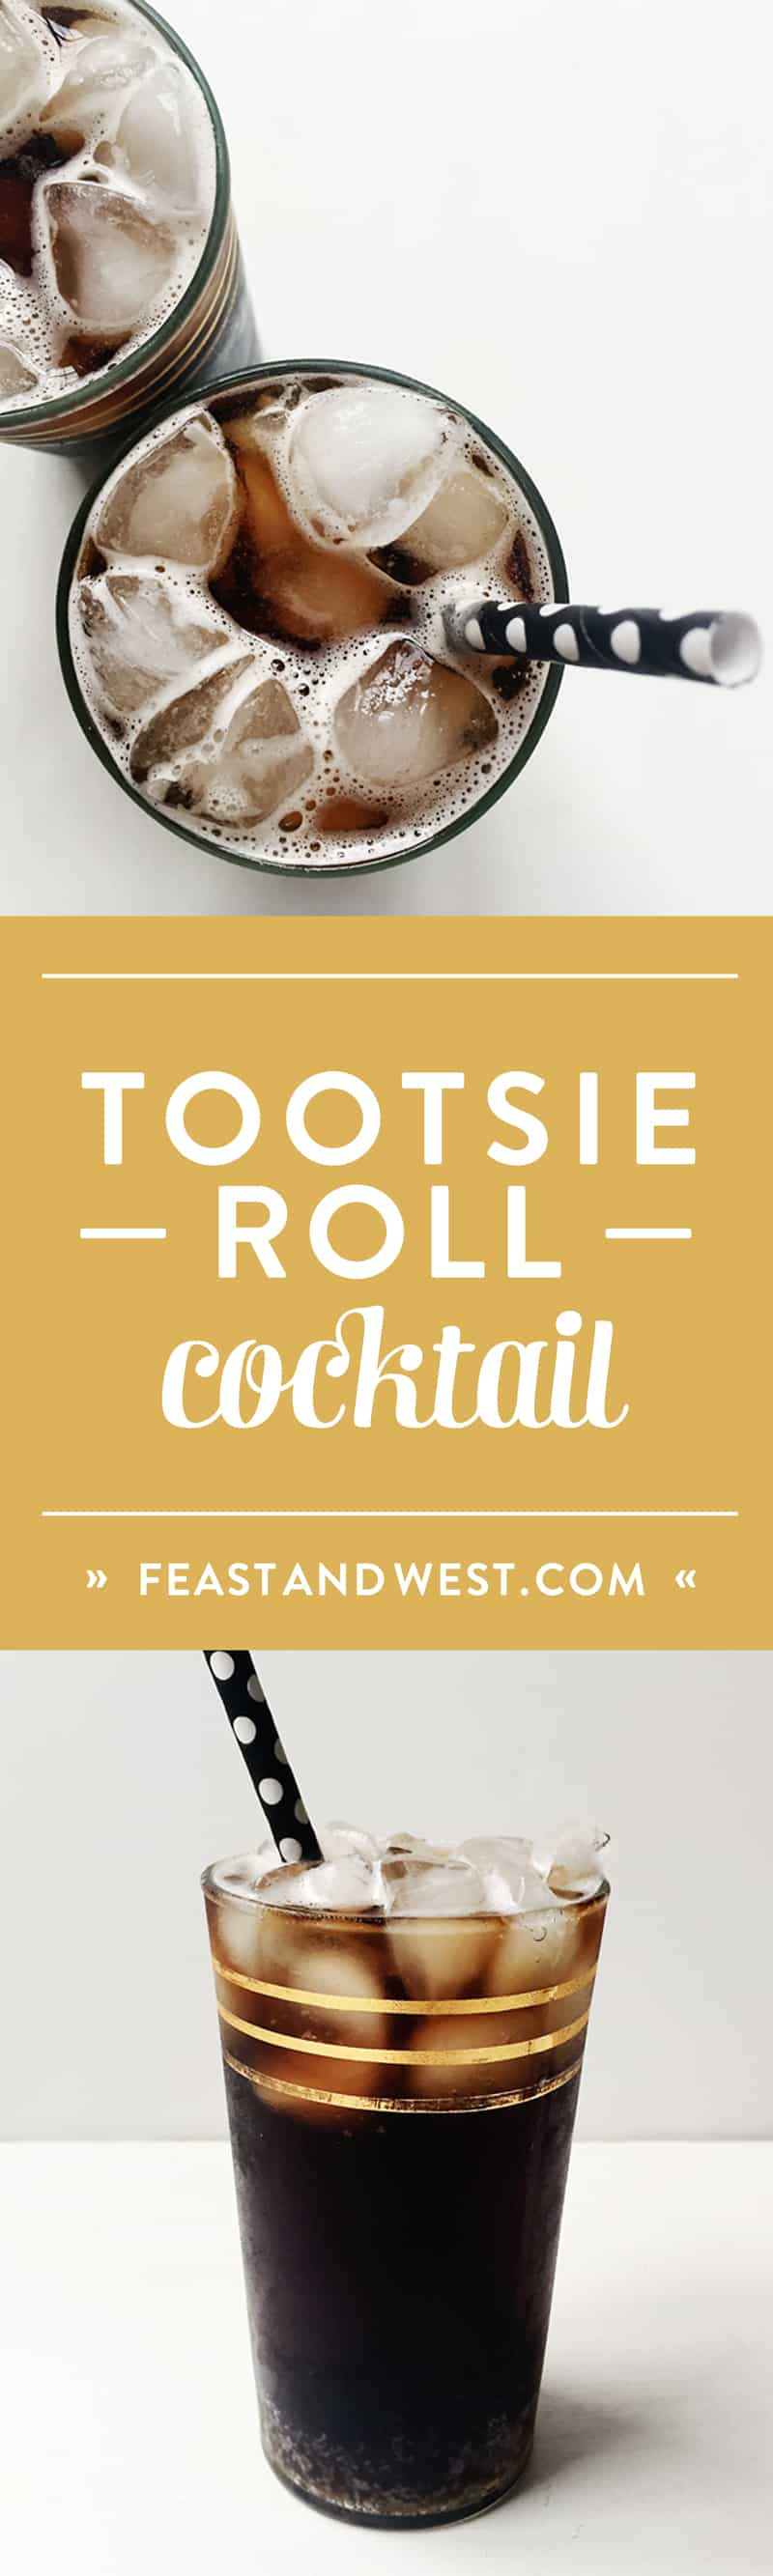 The Tootsie Roll Cocktail is a black candy cocktail fit for Halloween. Even though it's spooky and dark, it is sure to satisfy any sweet tooth!(via feastandwest.com)